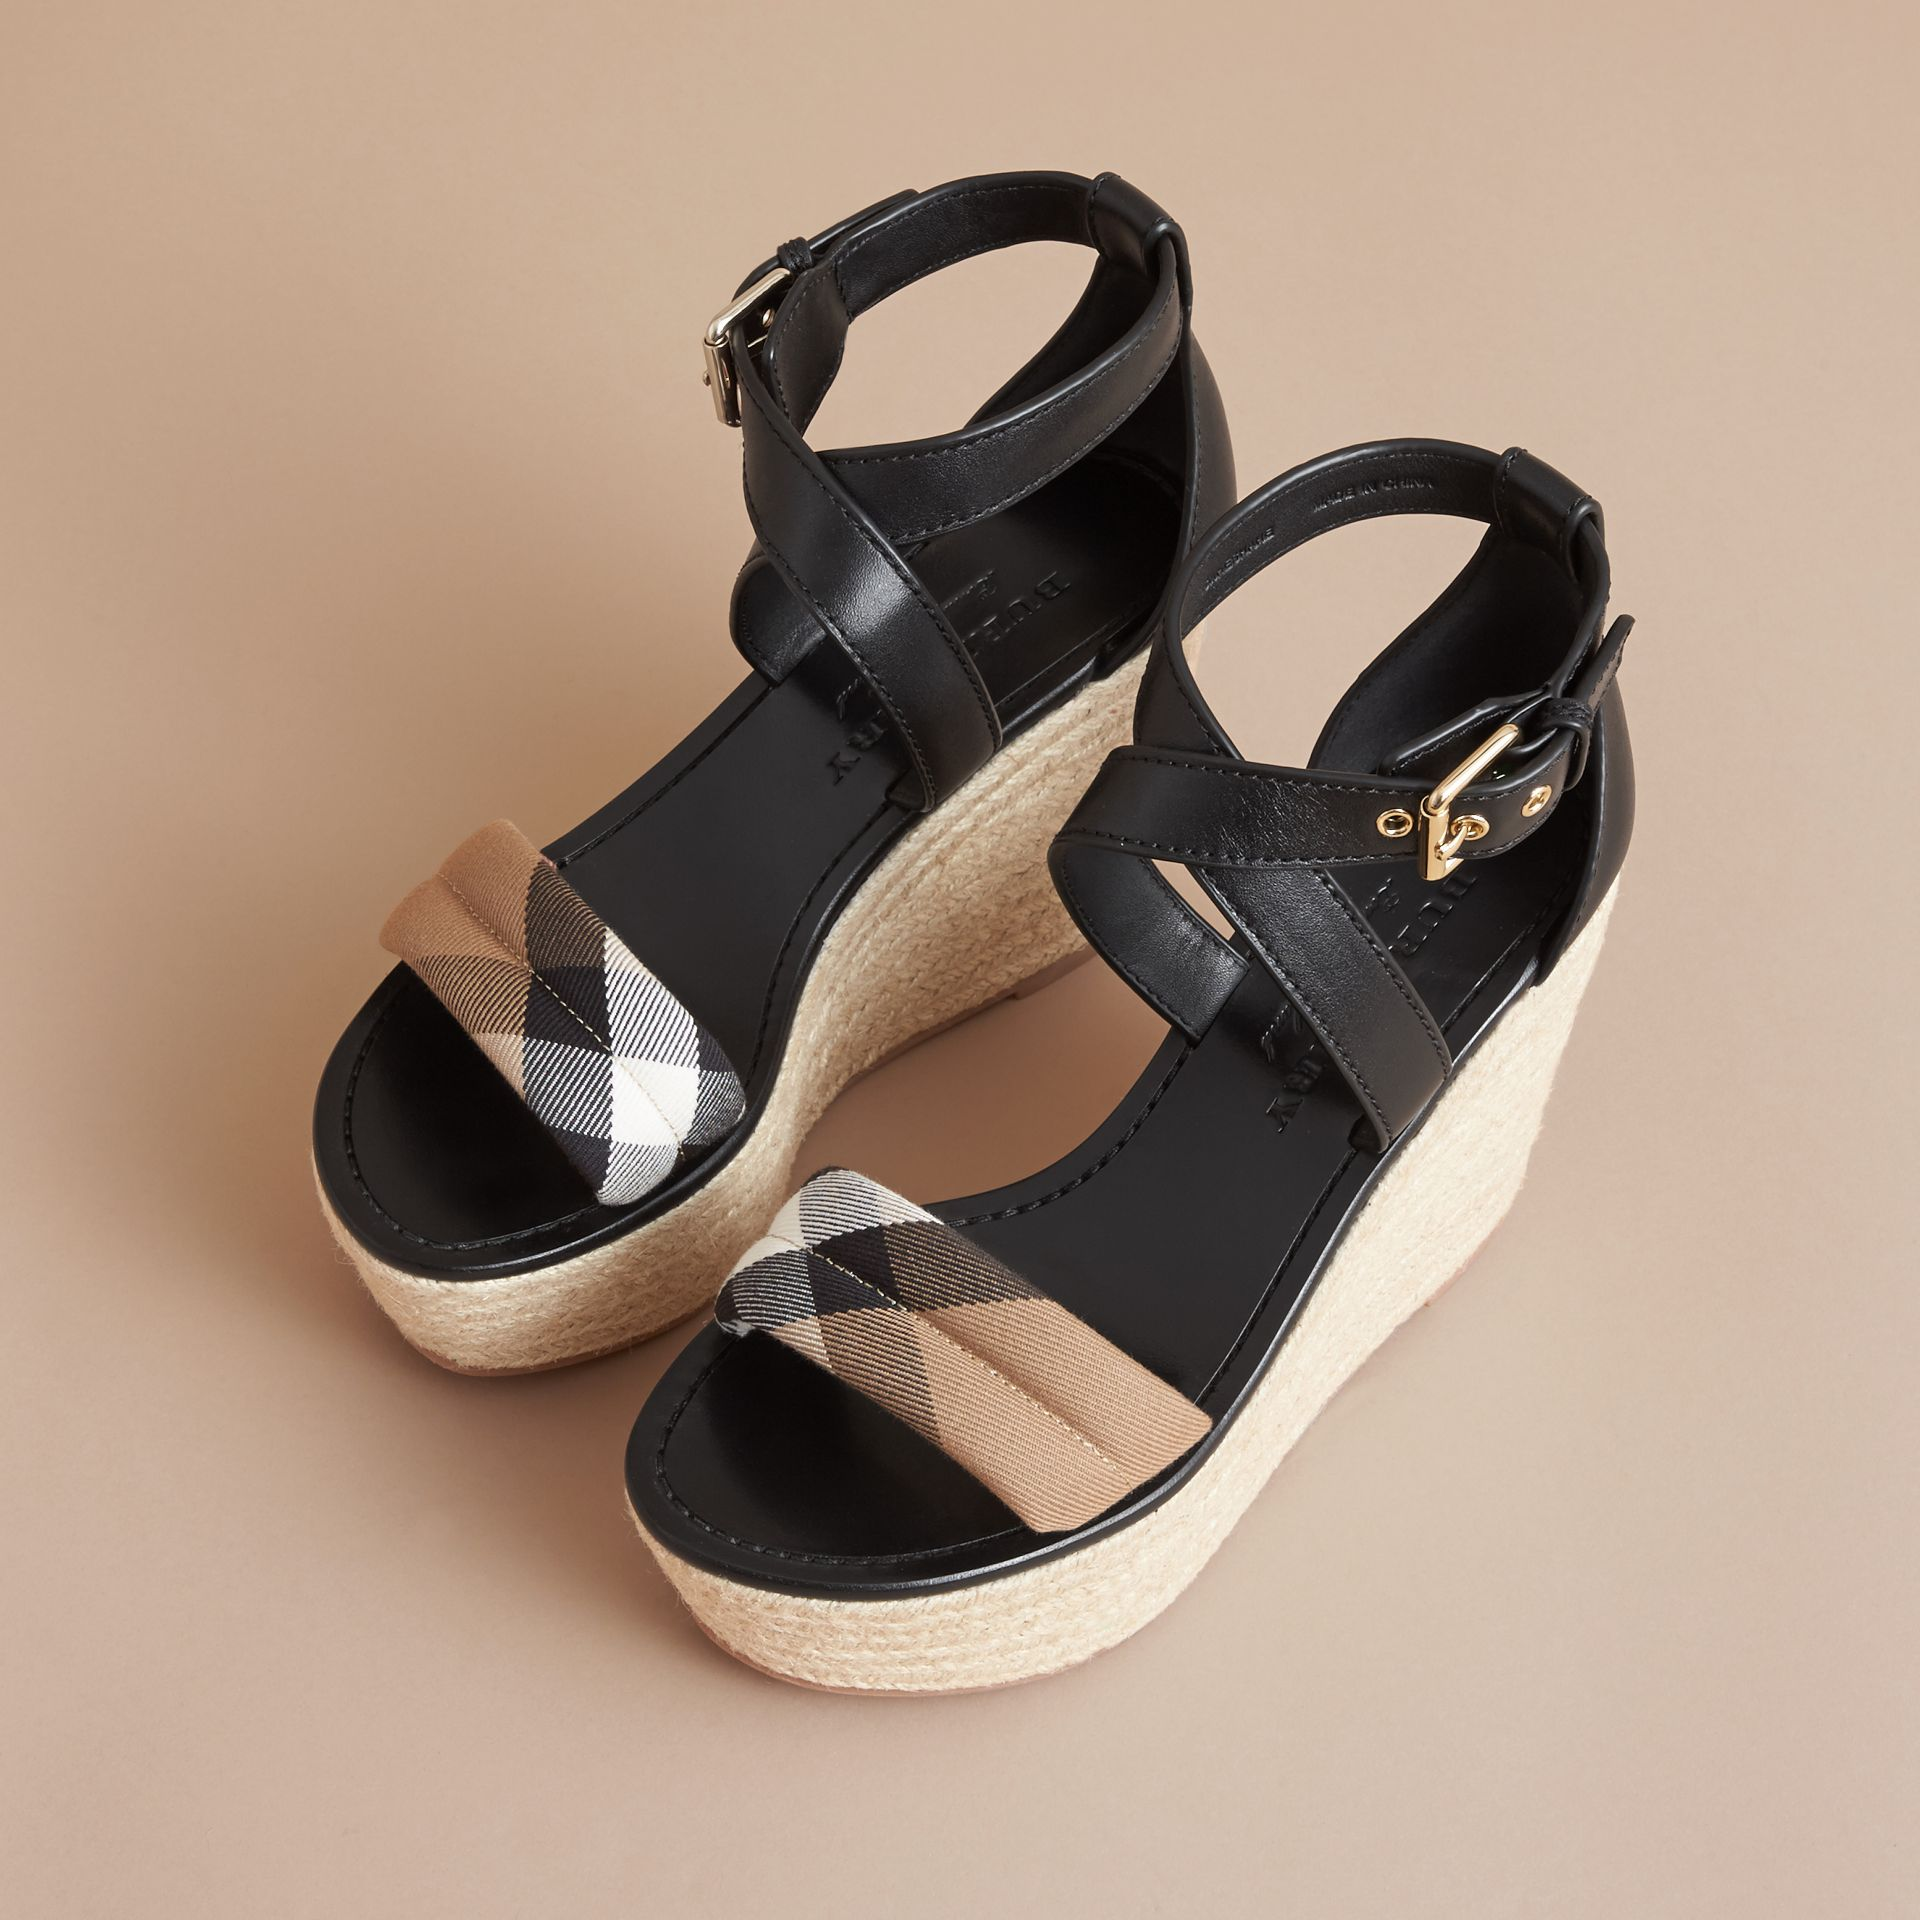 Leather and House Check Platform Espadrille Wedge Sandals in Black - Women | Burberry Singapore - gallery image 4